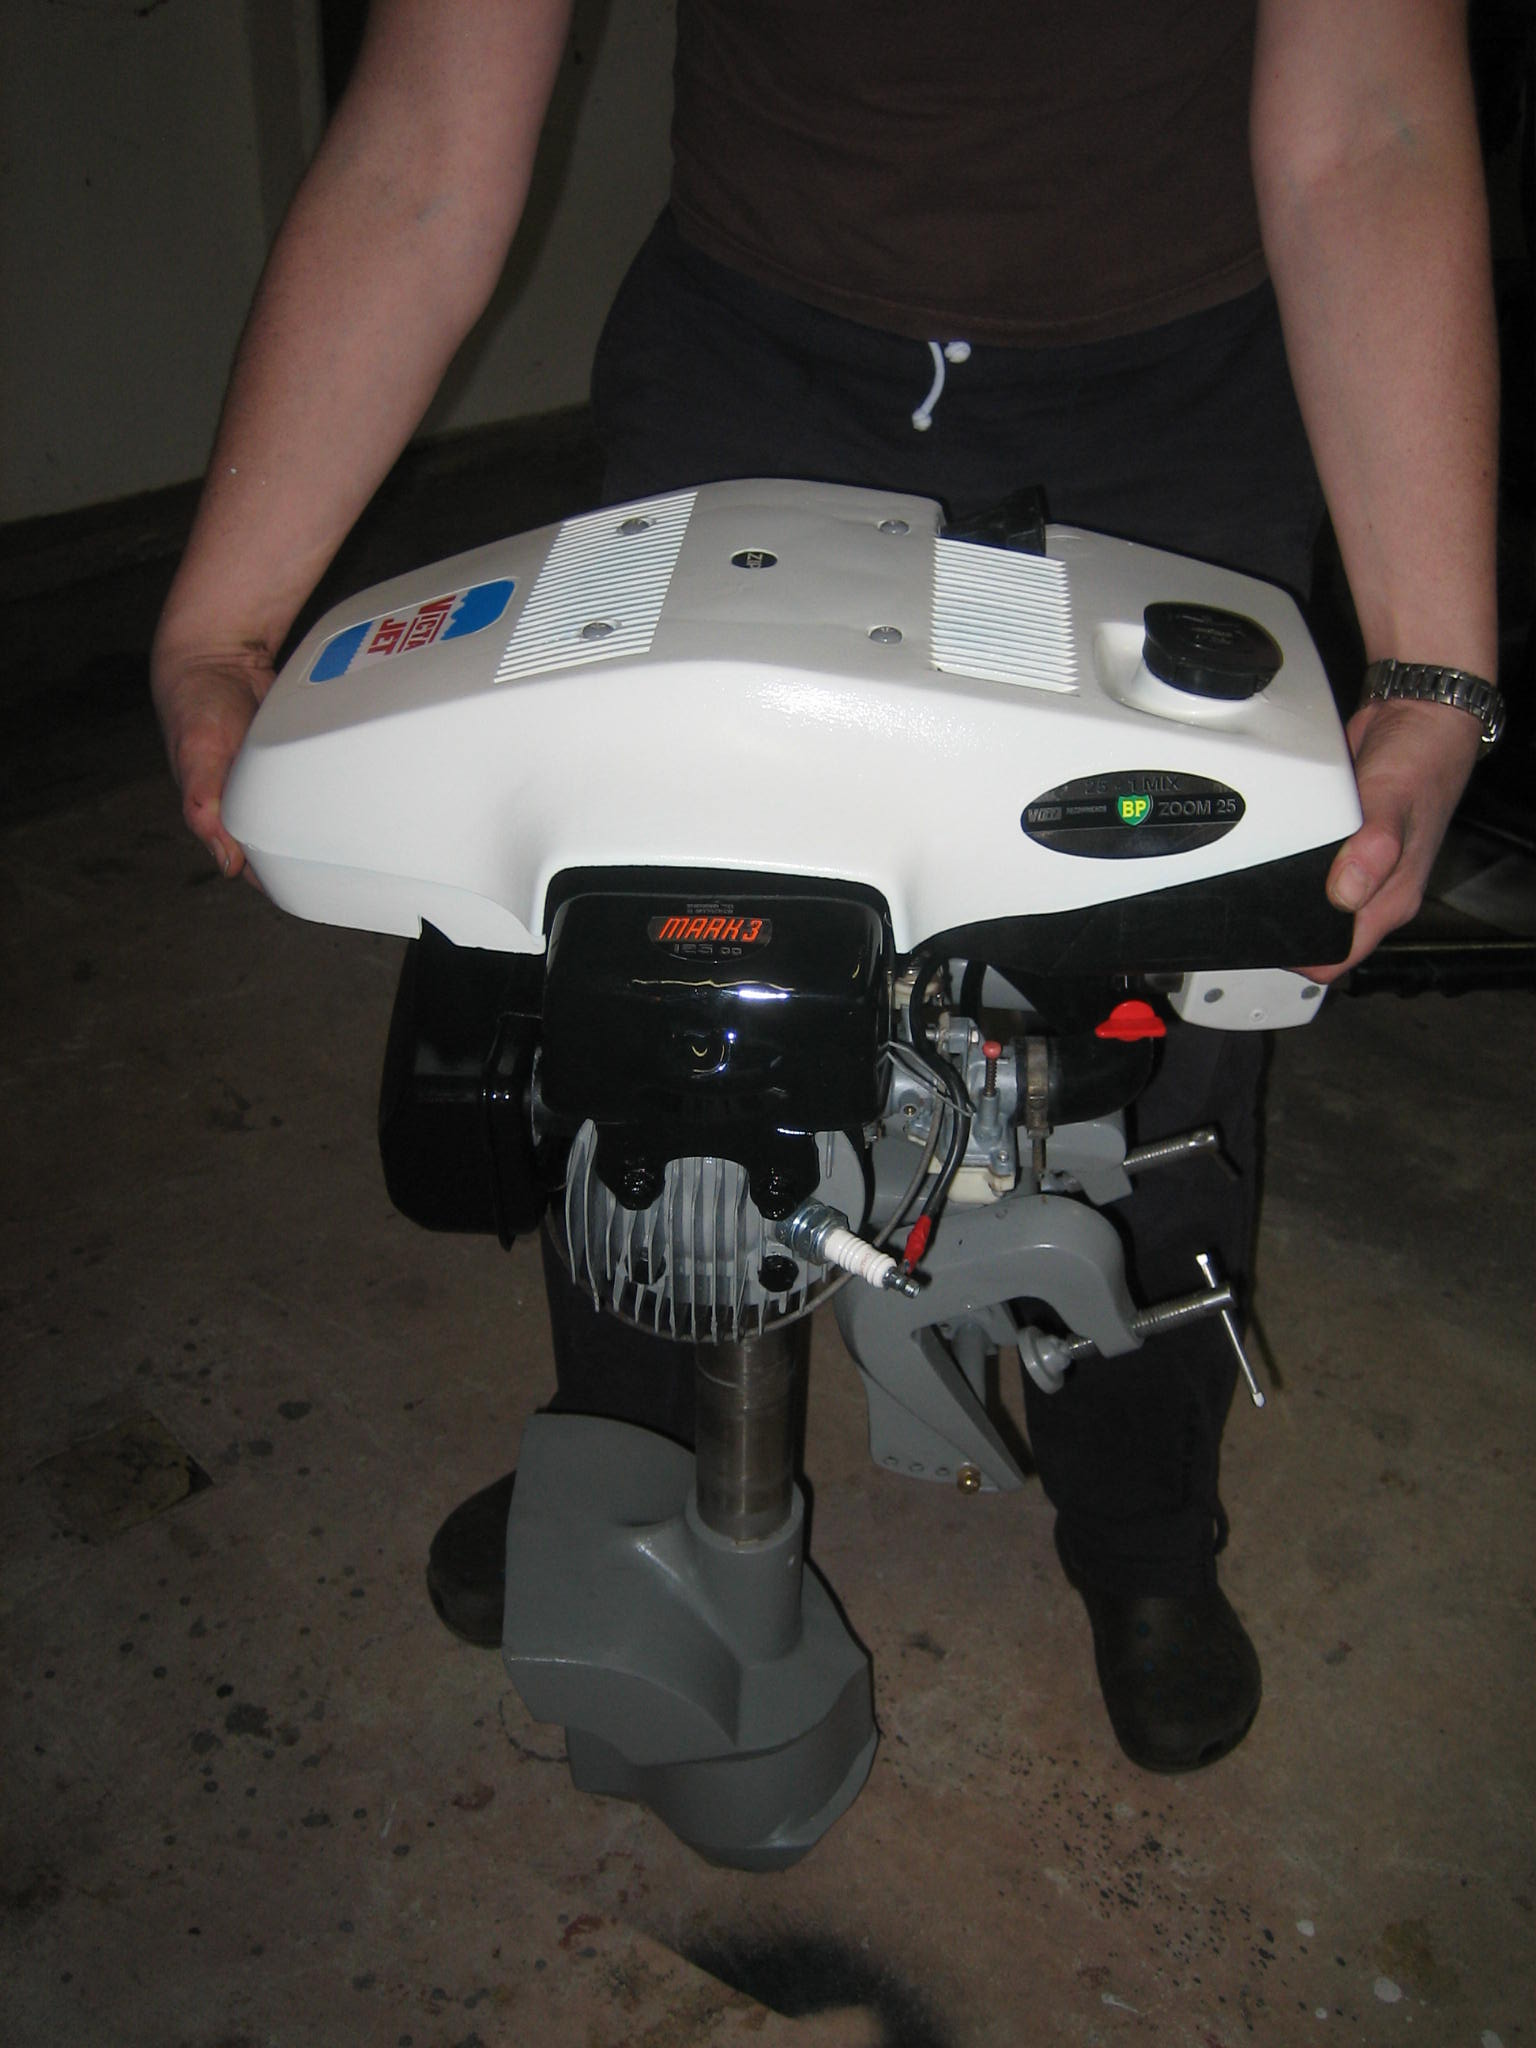 Victa Jet Outboard Wanted In Nz Saving Old Seagulls